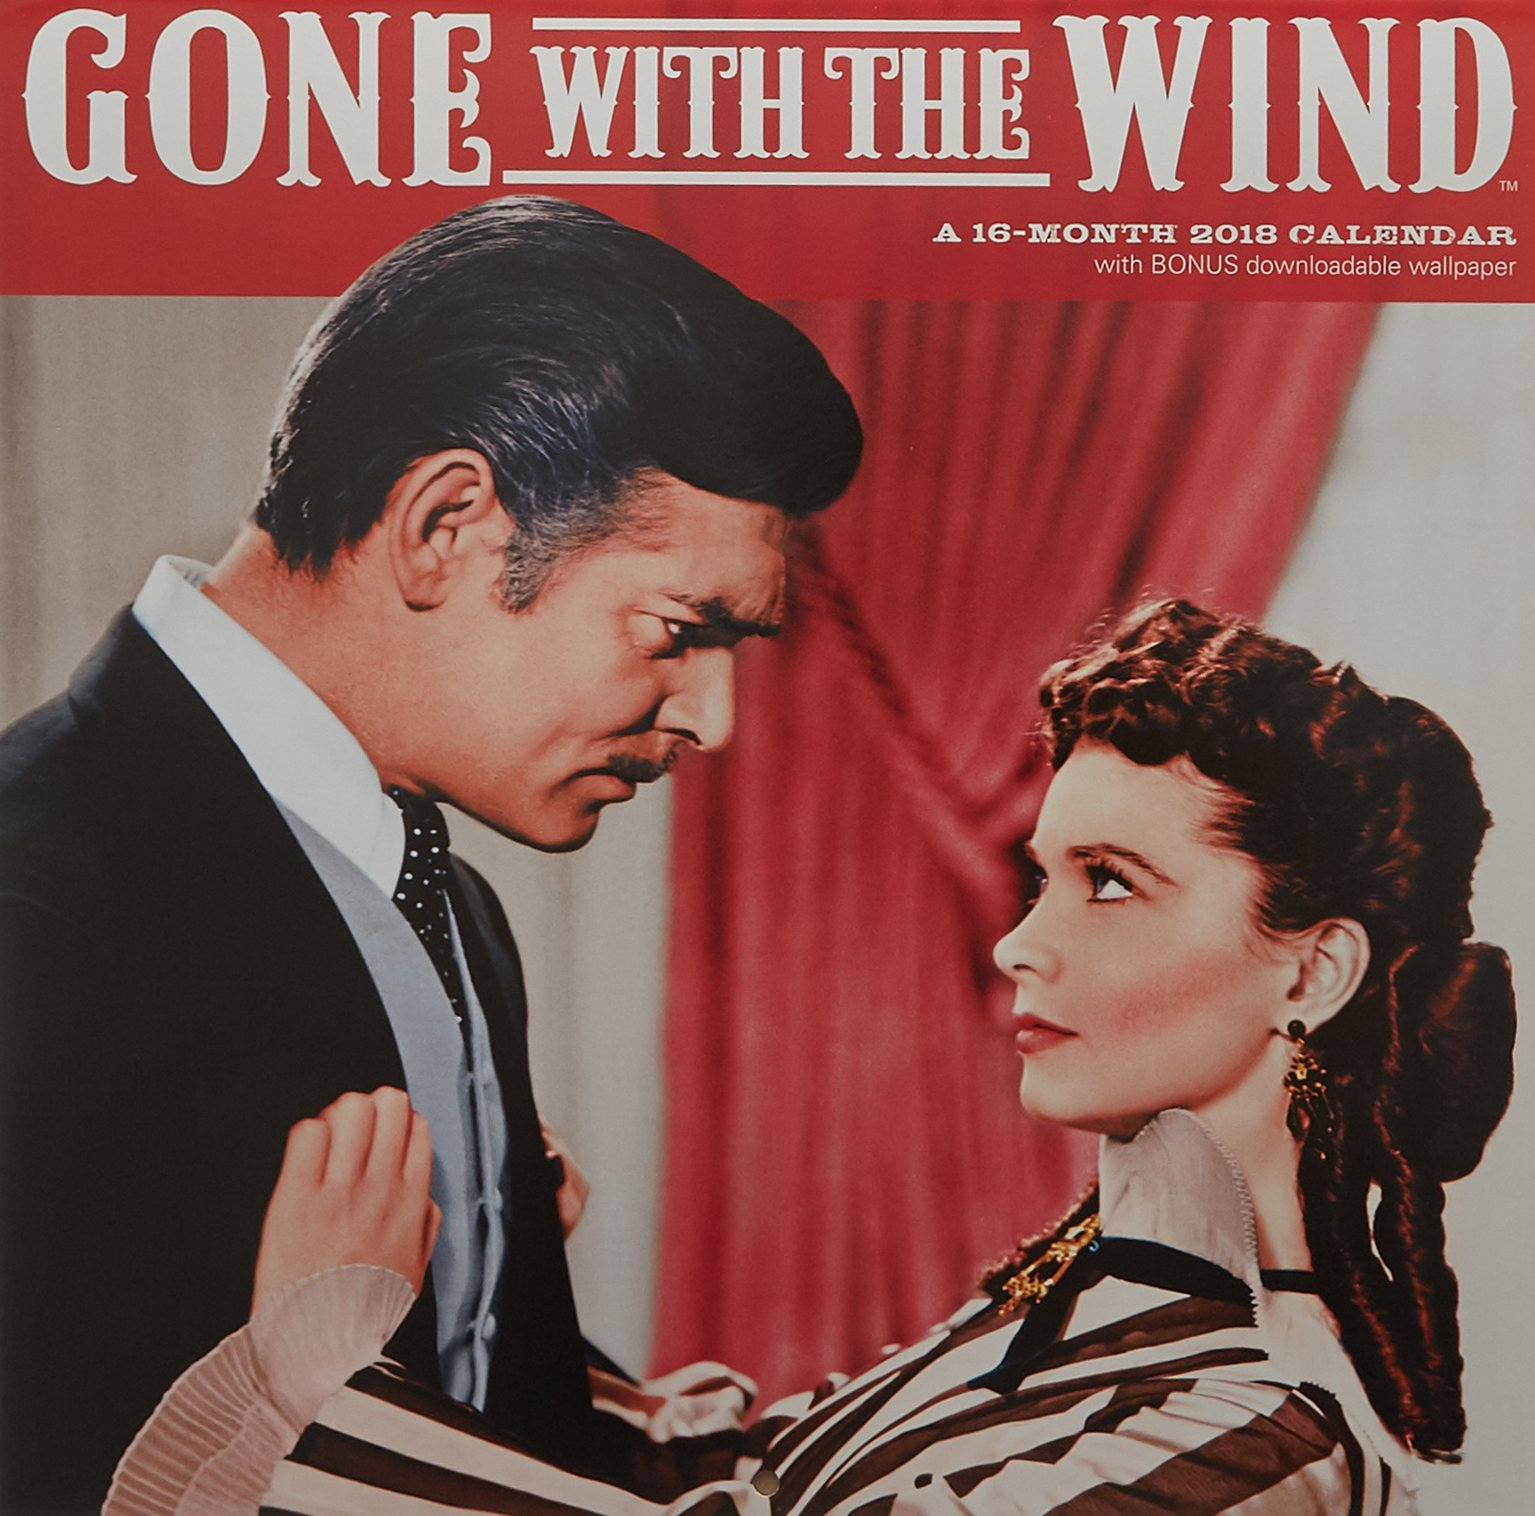 Gone With The Wind 2018 Calendar With Bonus Downloadable